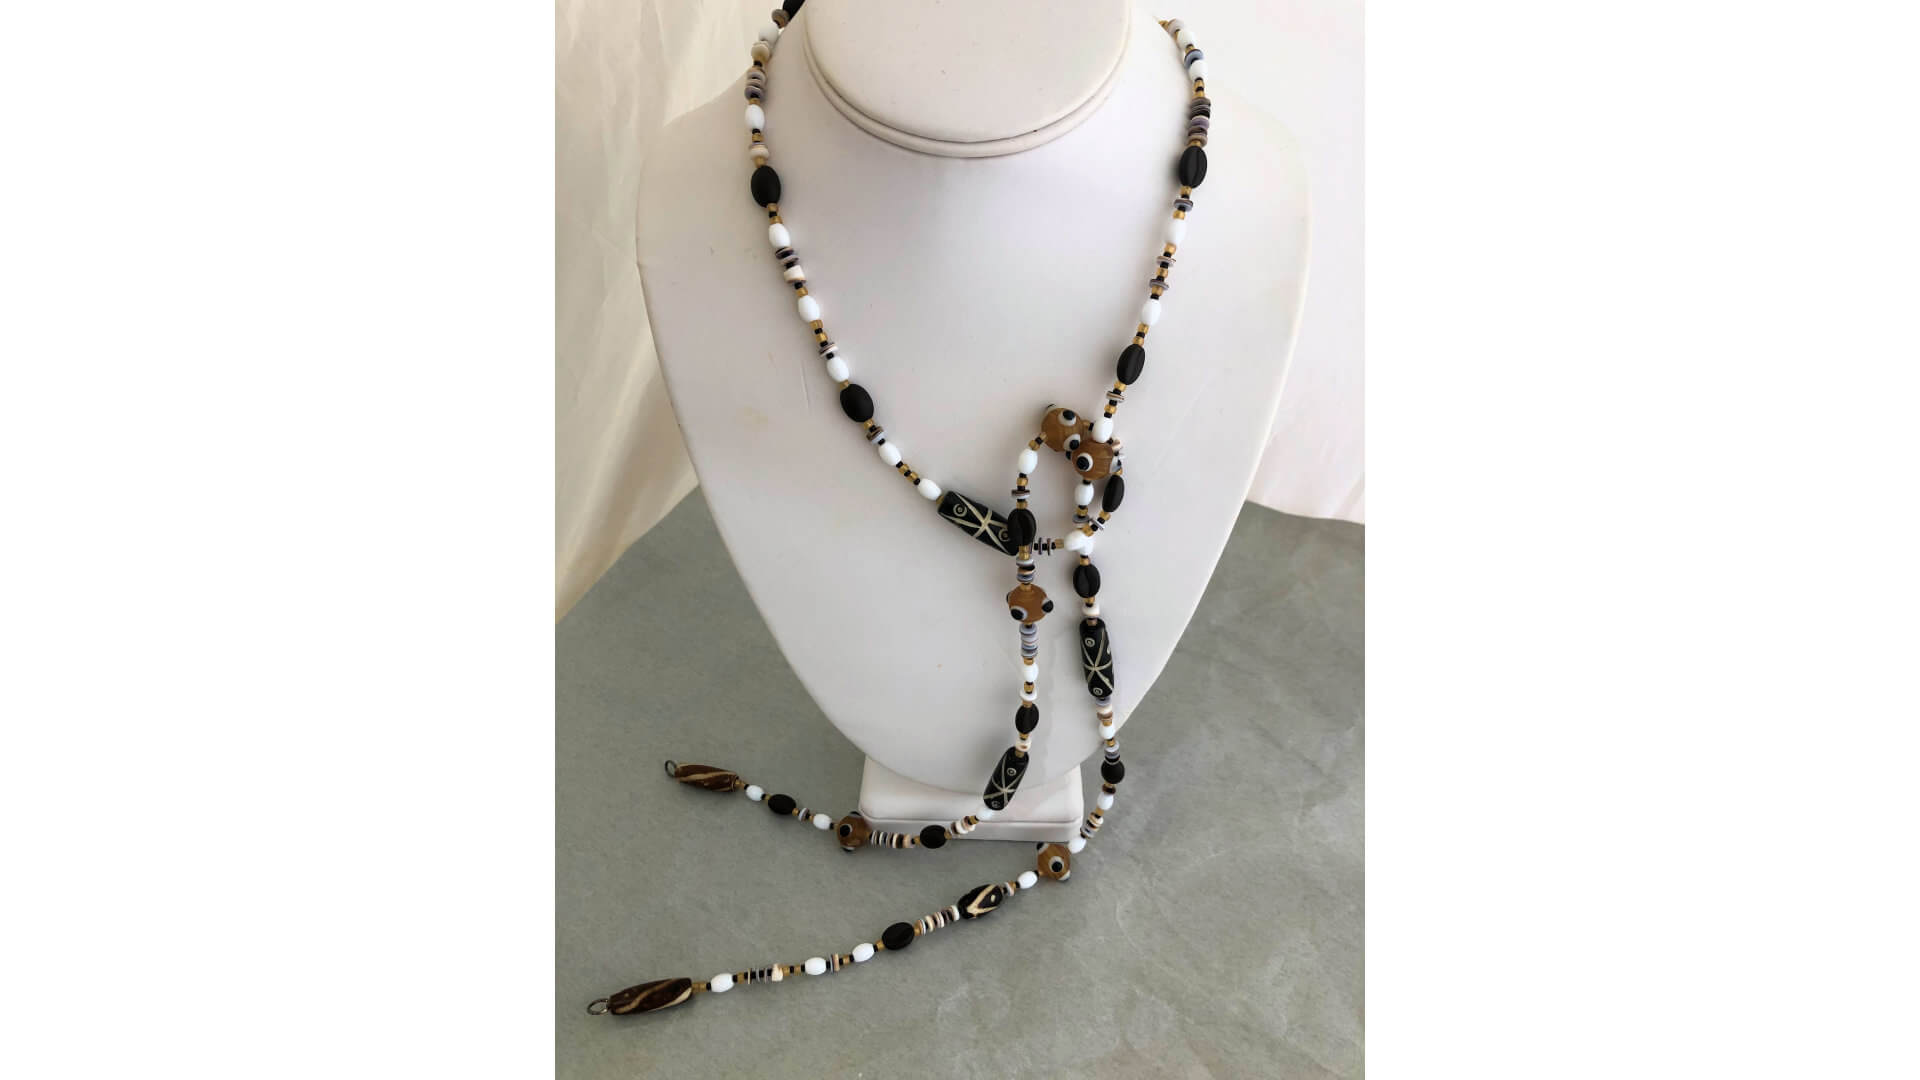 Brown, Black, and White Beaded Lariat Necklace by Susan Hazer Designs